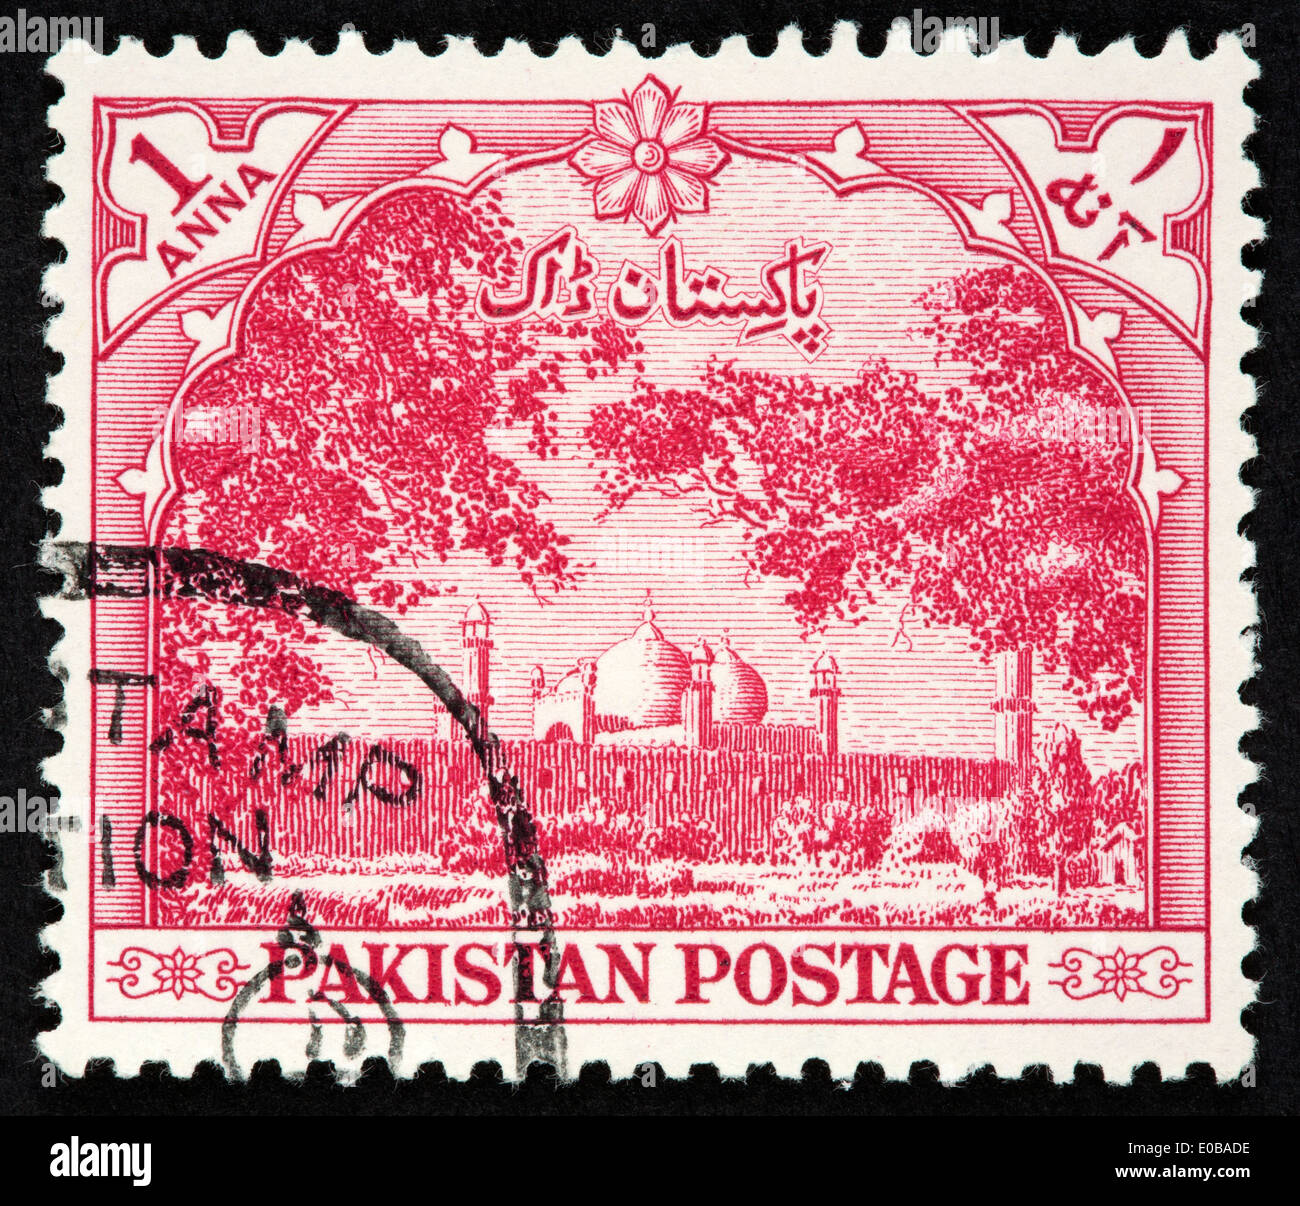 Pakistan postage stamp - Stock Image